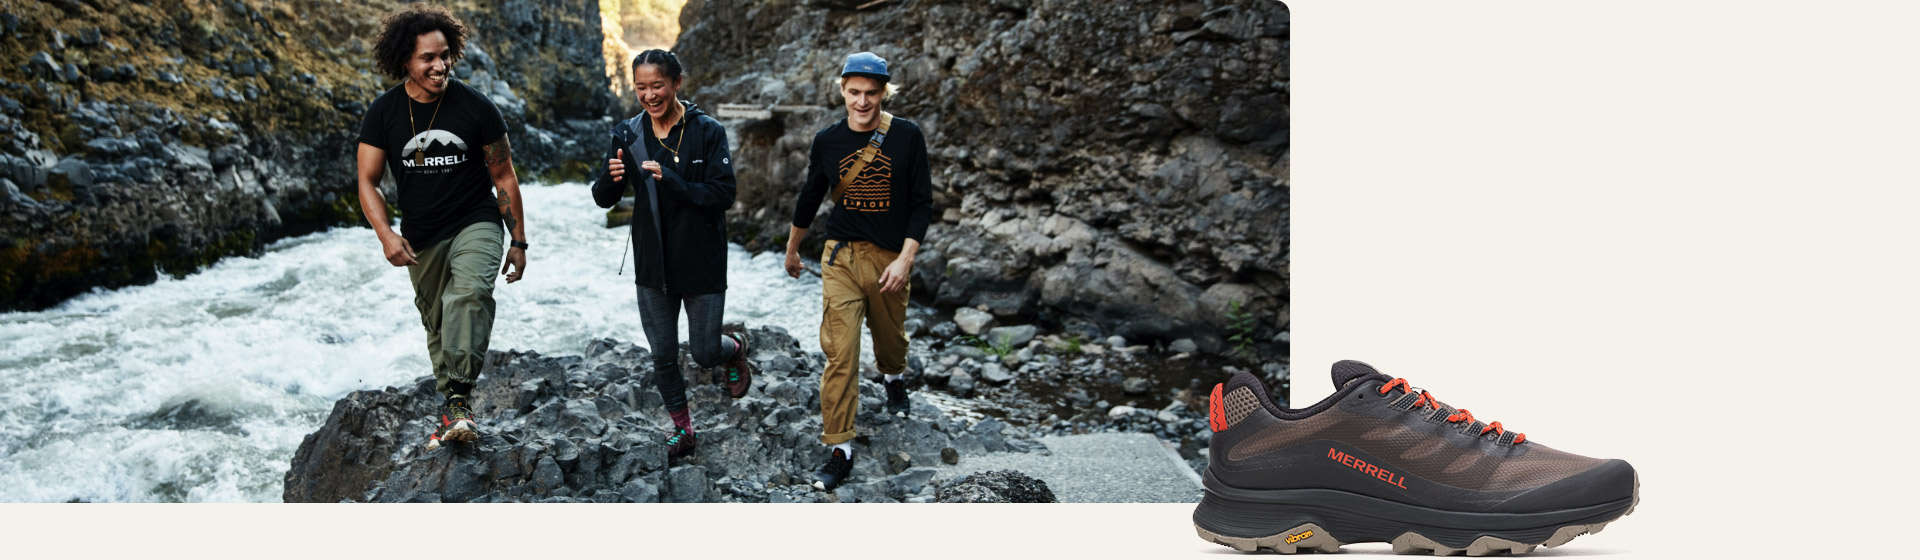 Three people hiking in Merrell shoes.